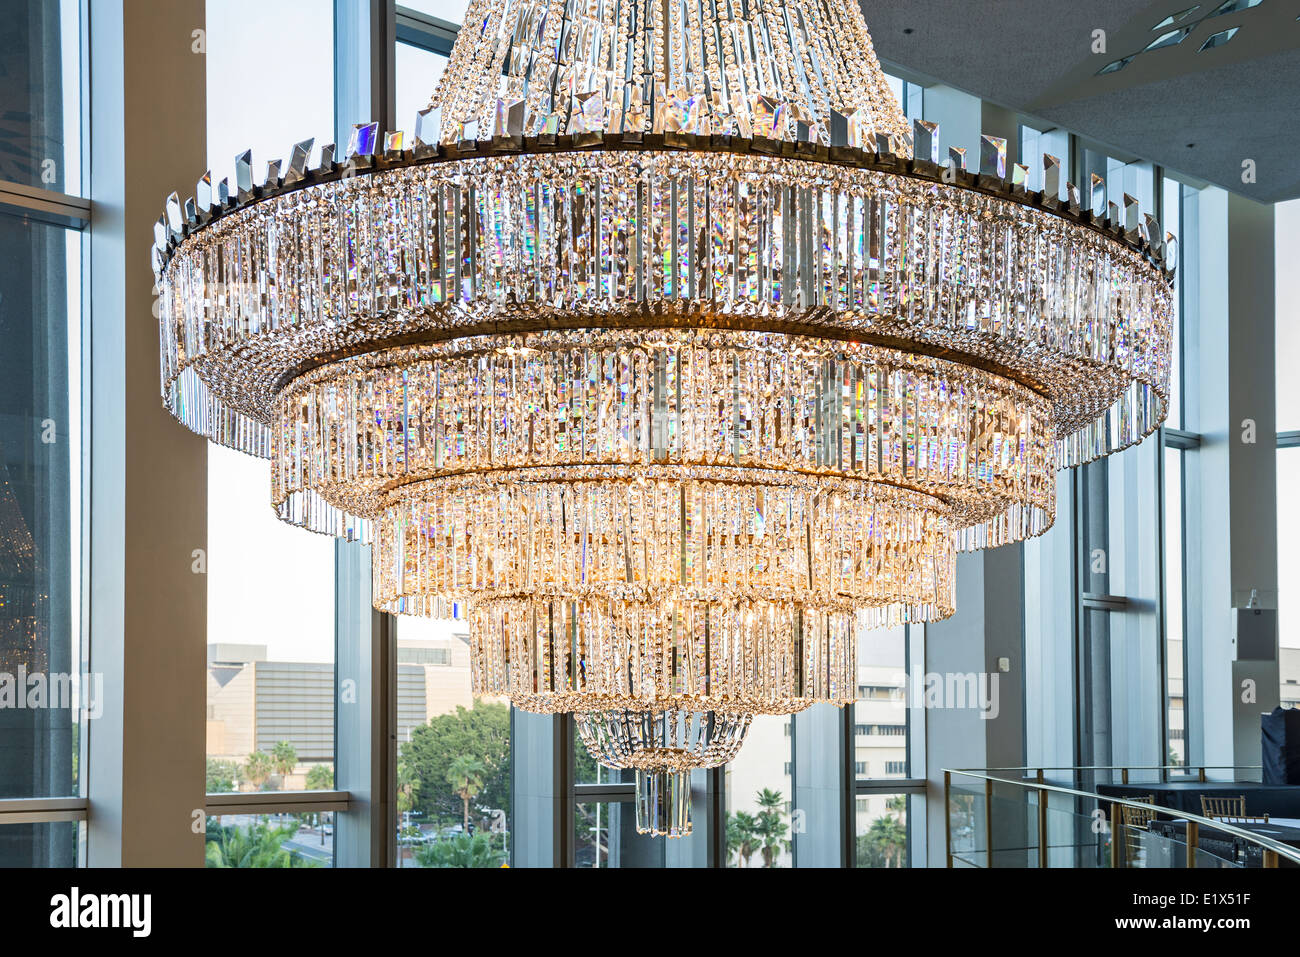 Crystal Chandelier Stock Photos & Crystal Chandelier Stock Images ...